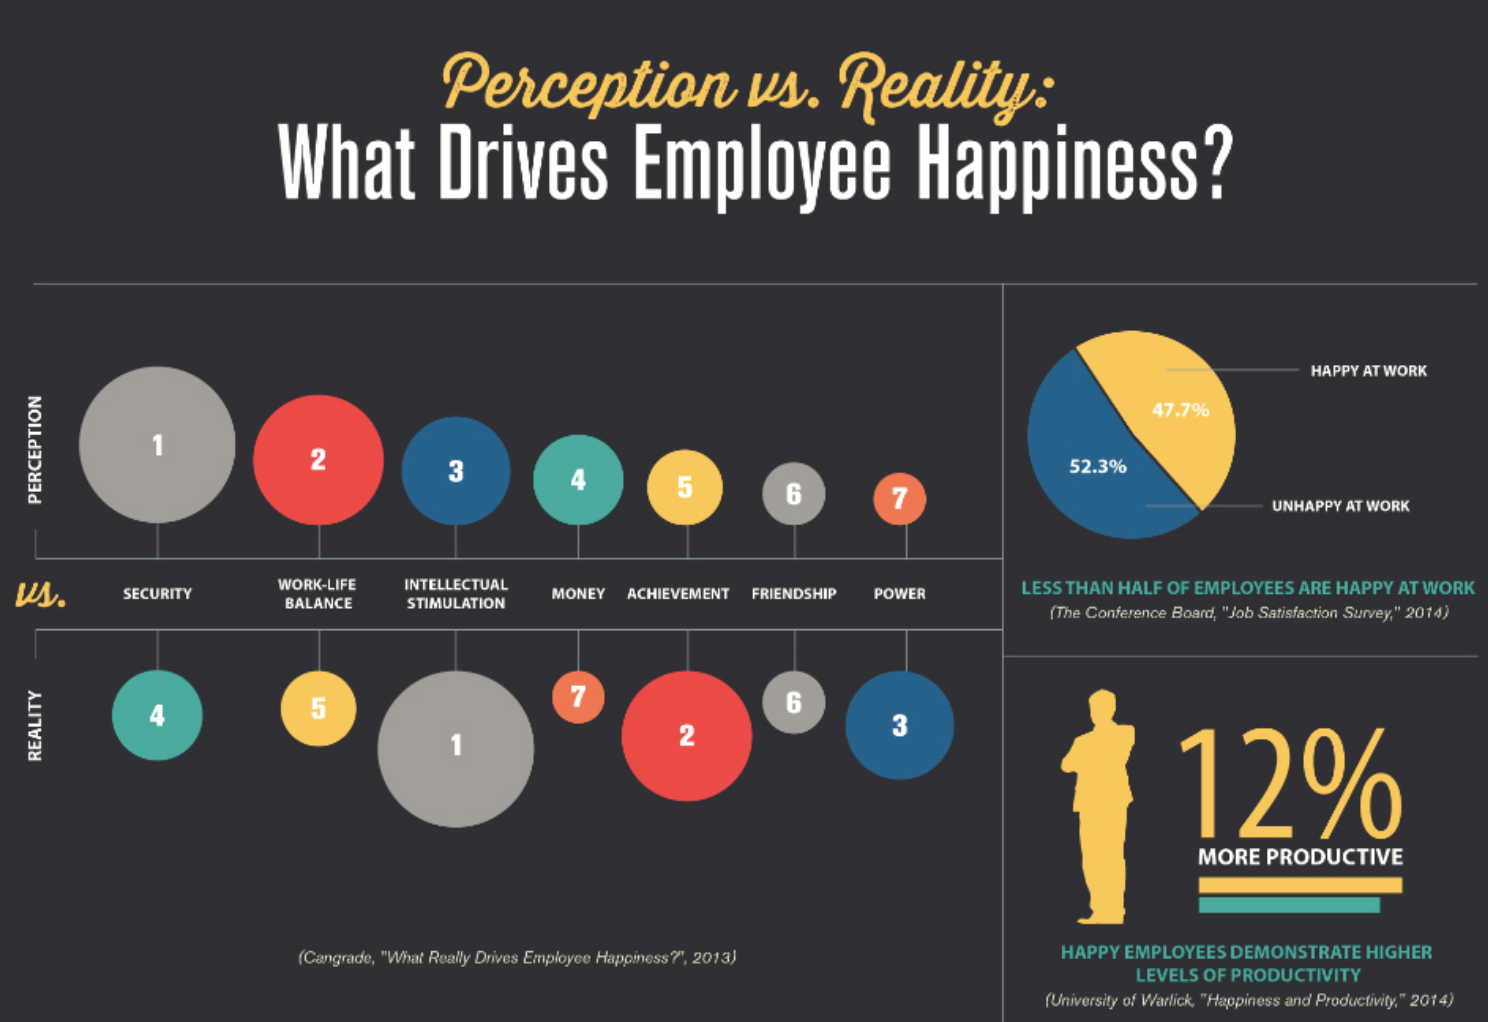 employee appreciation day, happiness and morale in the workplace